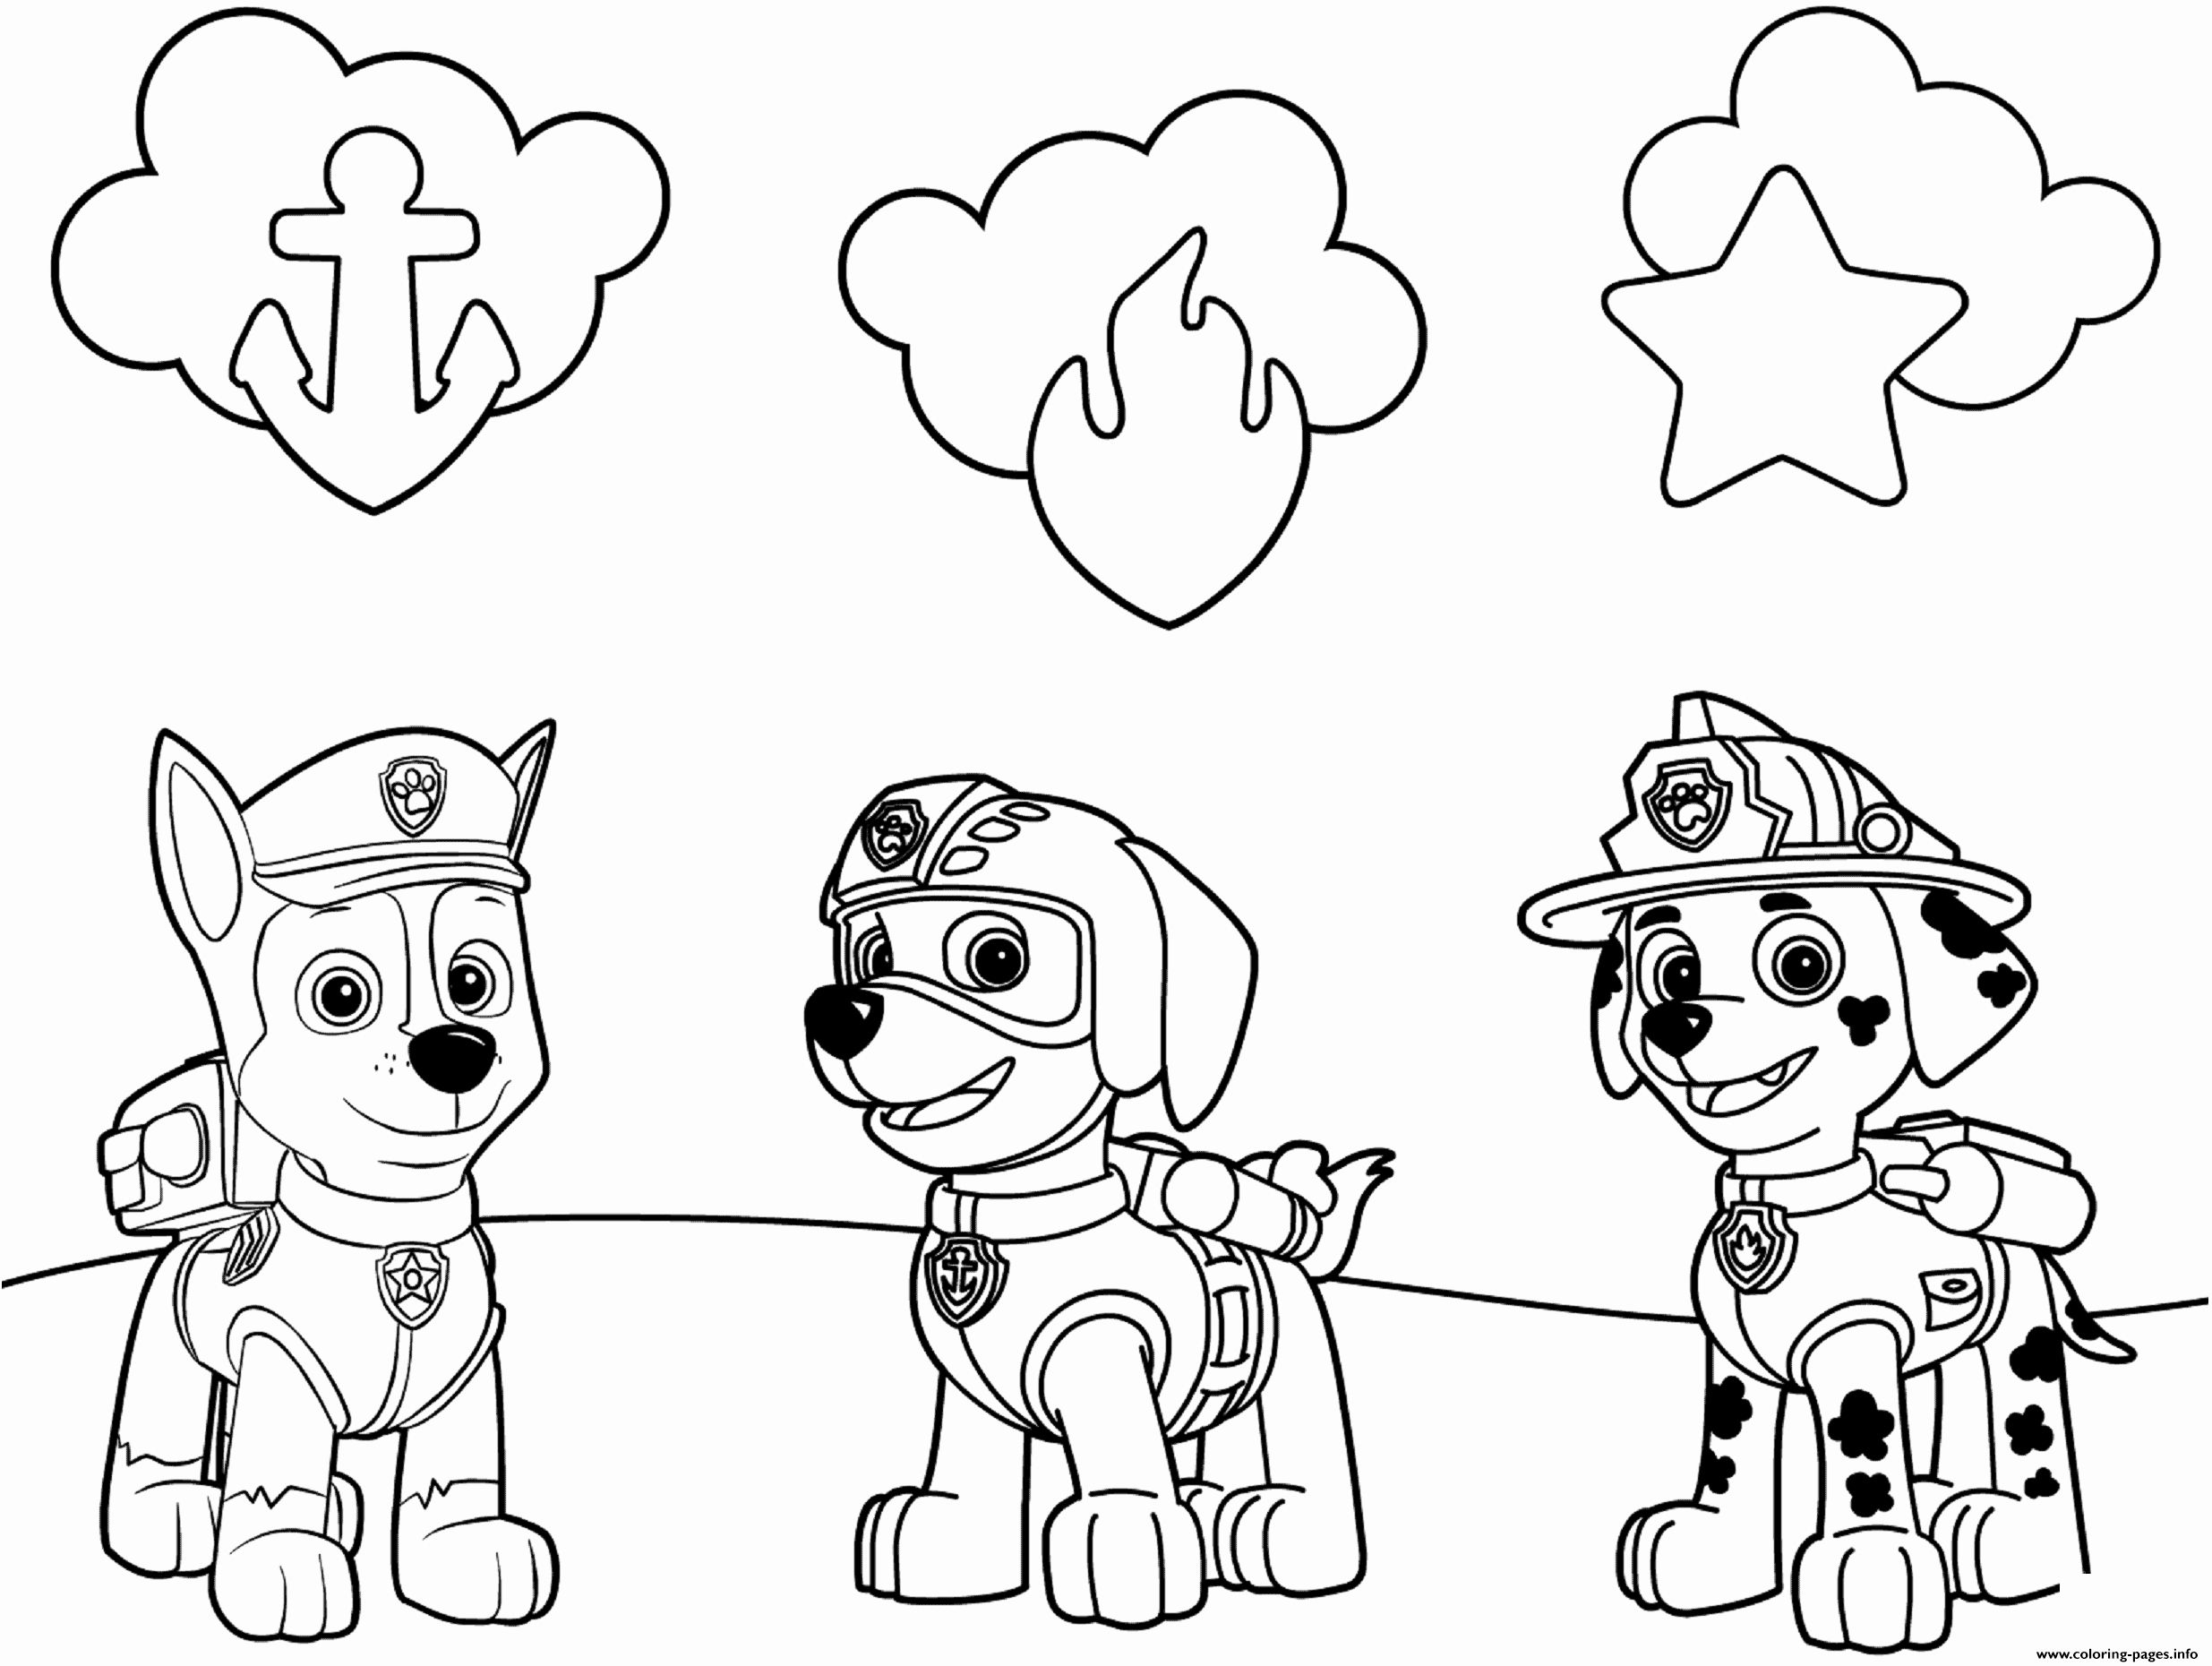 Paw Patrol Marshall Coloring Page New Free Paw Patrol Coloring Pages Happiness Is Homemade Insignia De Paw Patrol Libro De Colores Marshall Patrulla Canina